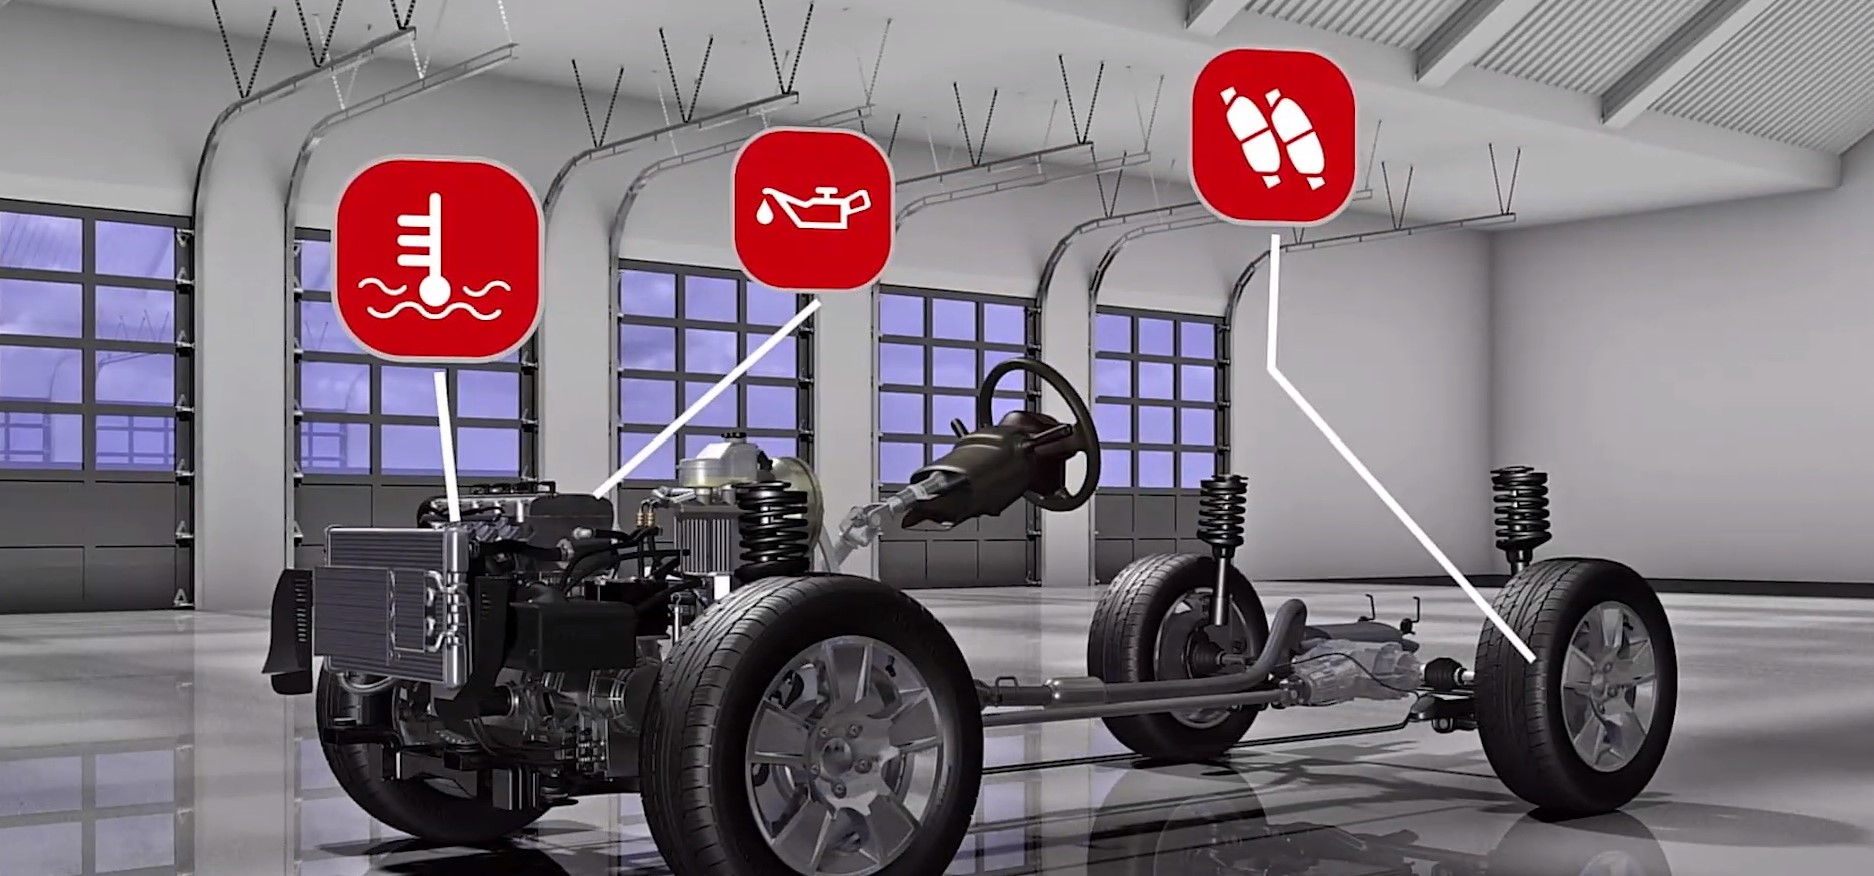 A visual of some difference maintenance areas and whether they are on your vehicle